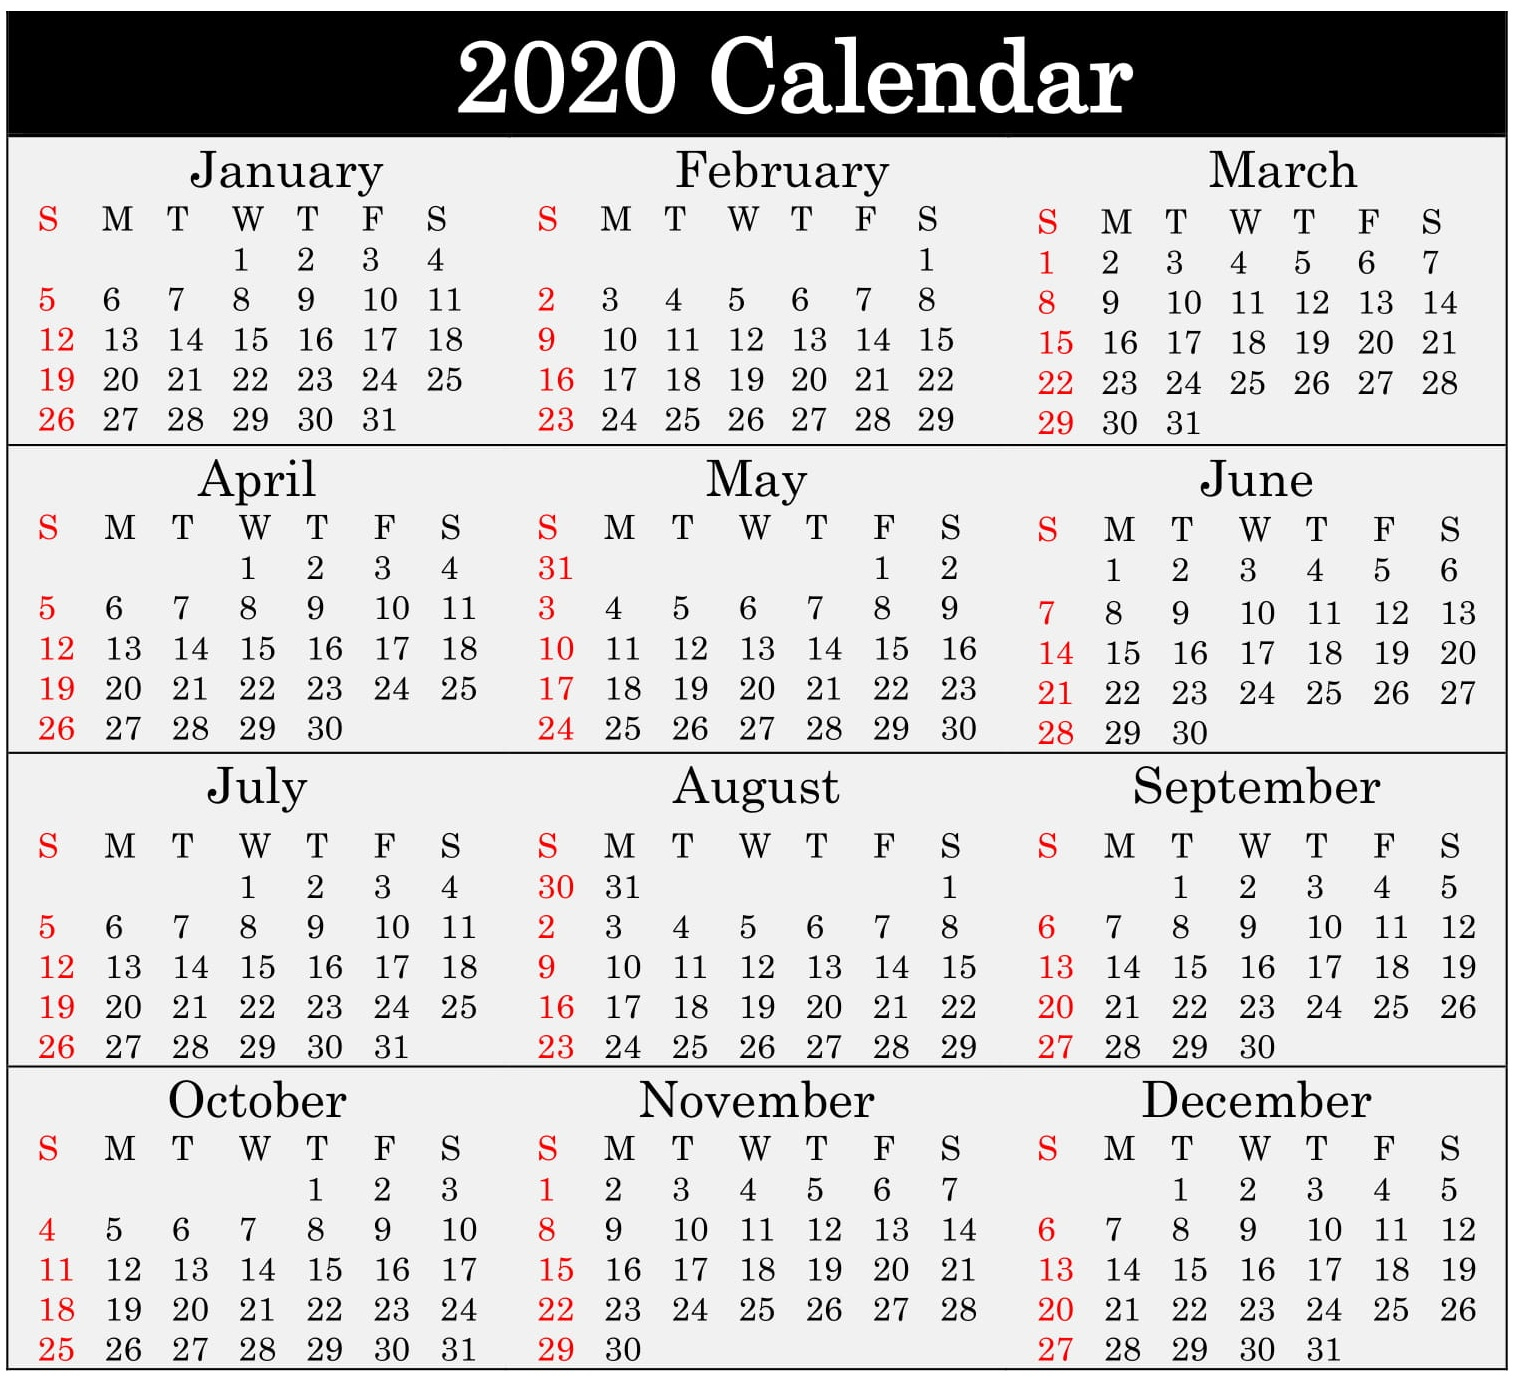 Printable 2020 Calendar Word Document  Latest Printable with 2020 Julian Calendar